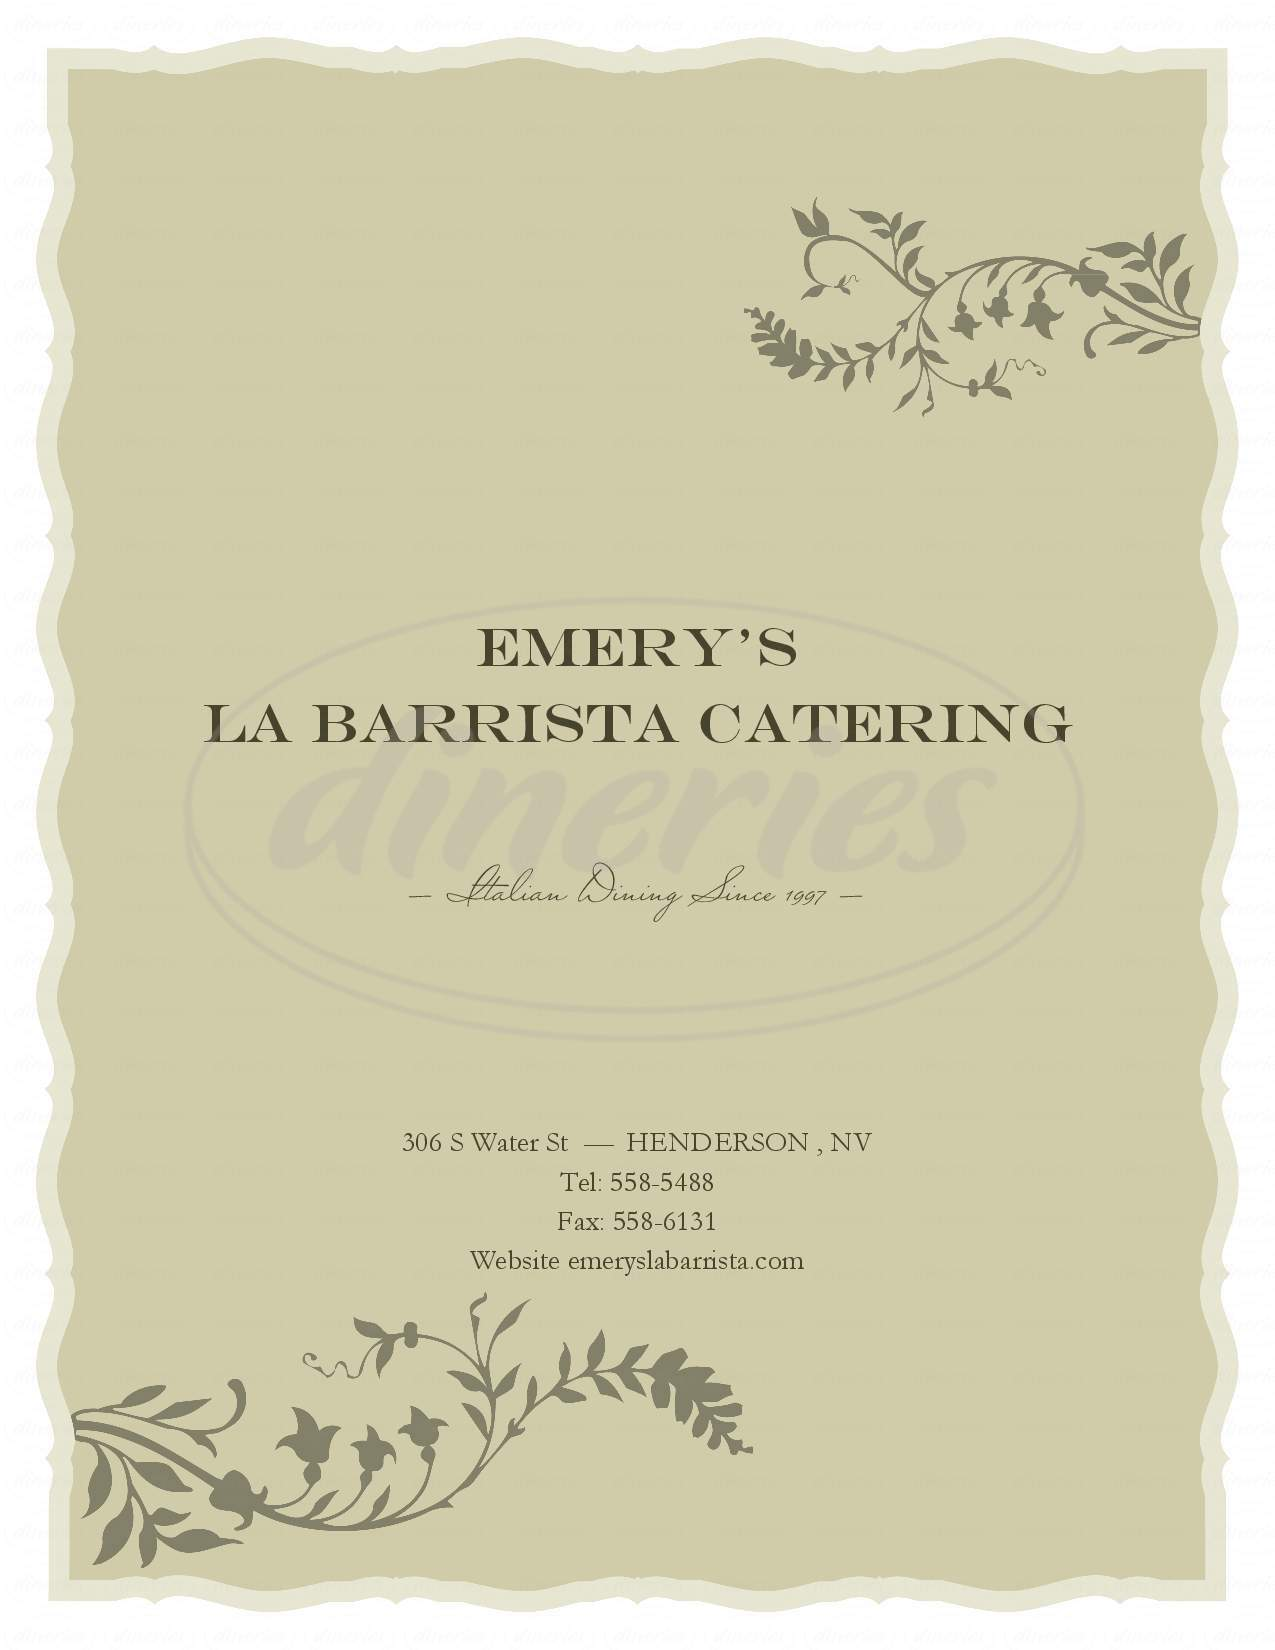 menu for Emery's / La Barrista Catering II